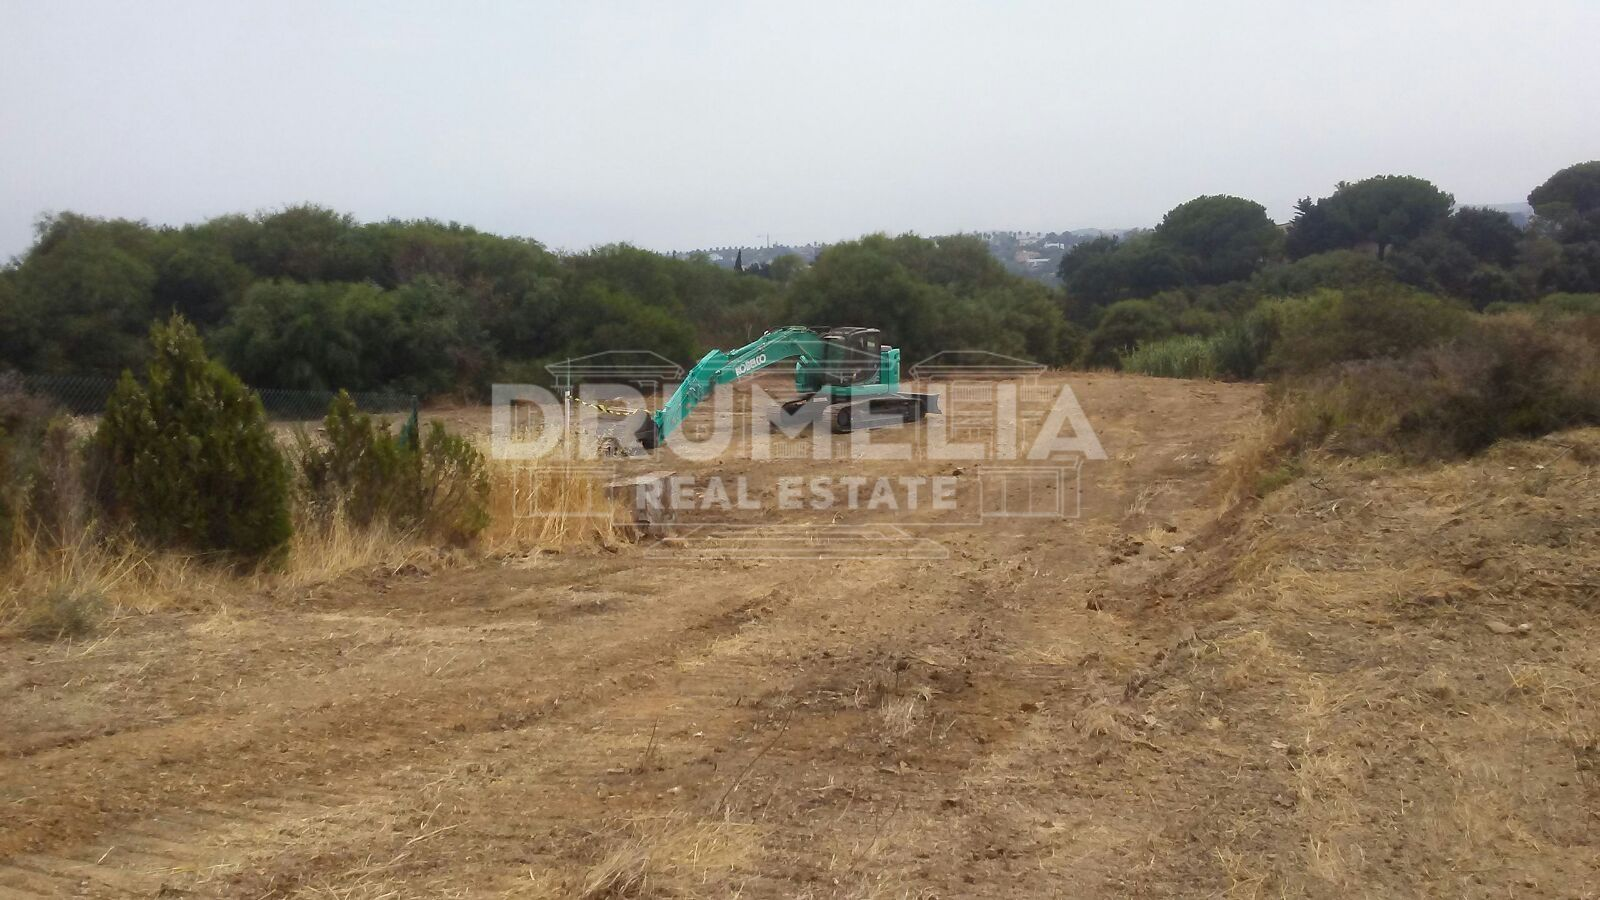 Sotogrande, Splendid Plot in La Reserva Club, Sotogrande